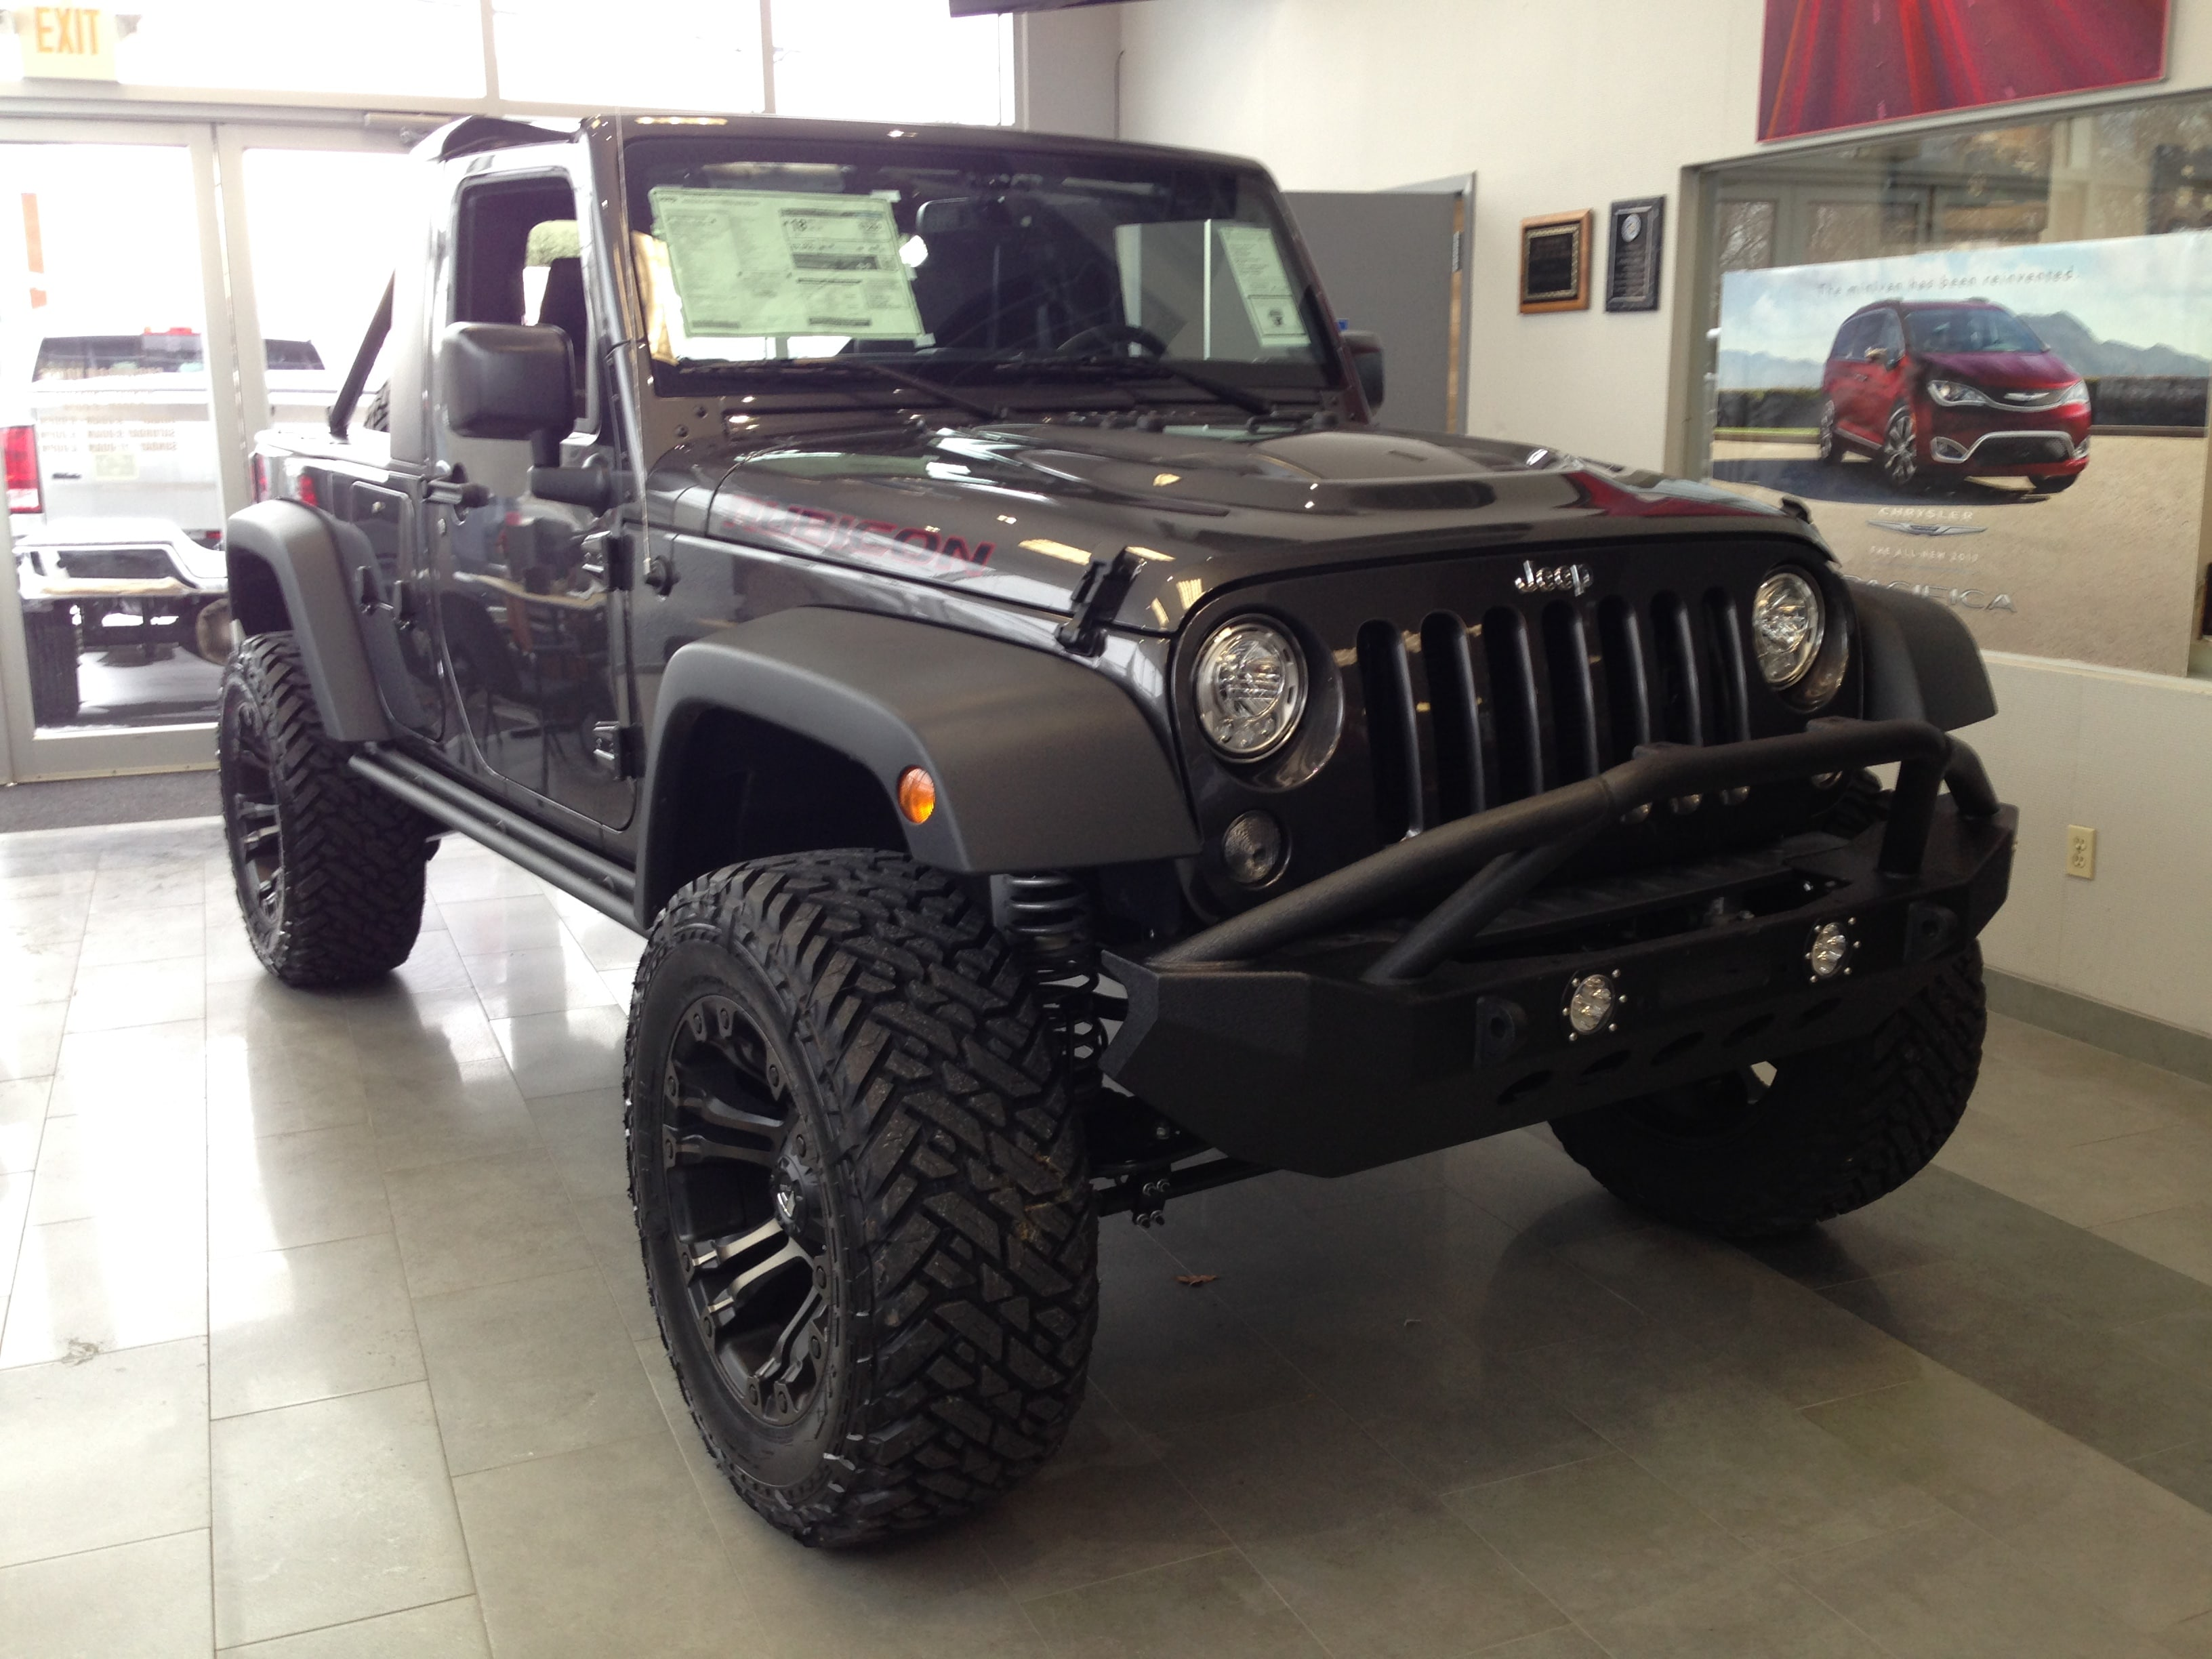 2017 Jeep Wrangler JK UNLIMITED RUBICON HARD ROCK 4X4 Sport Utility